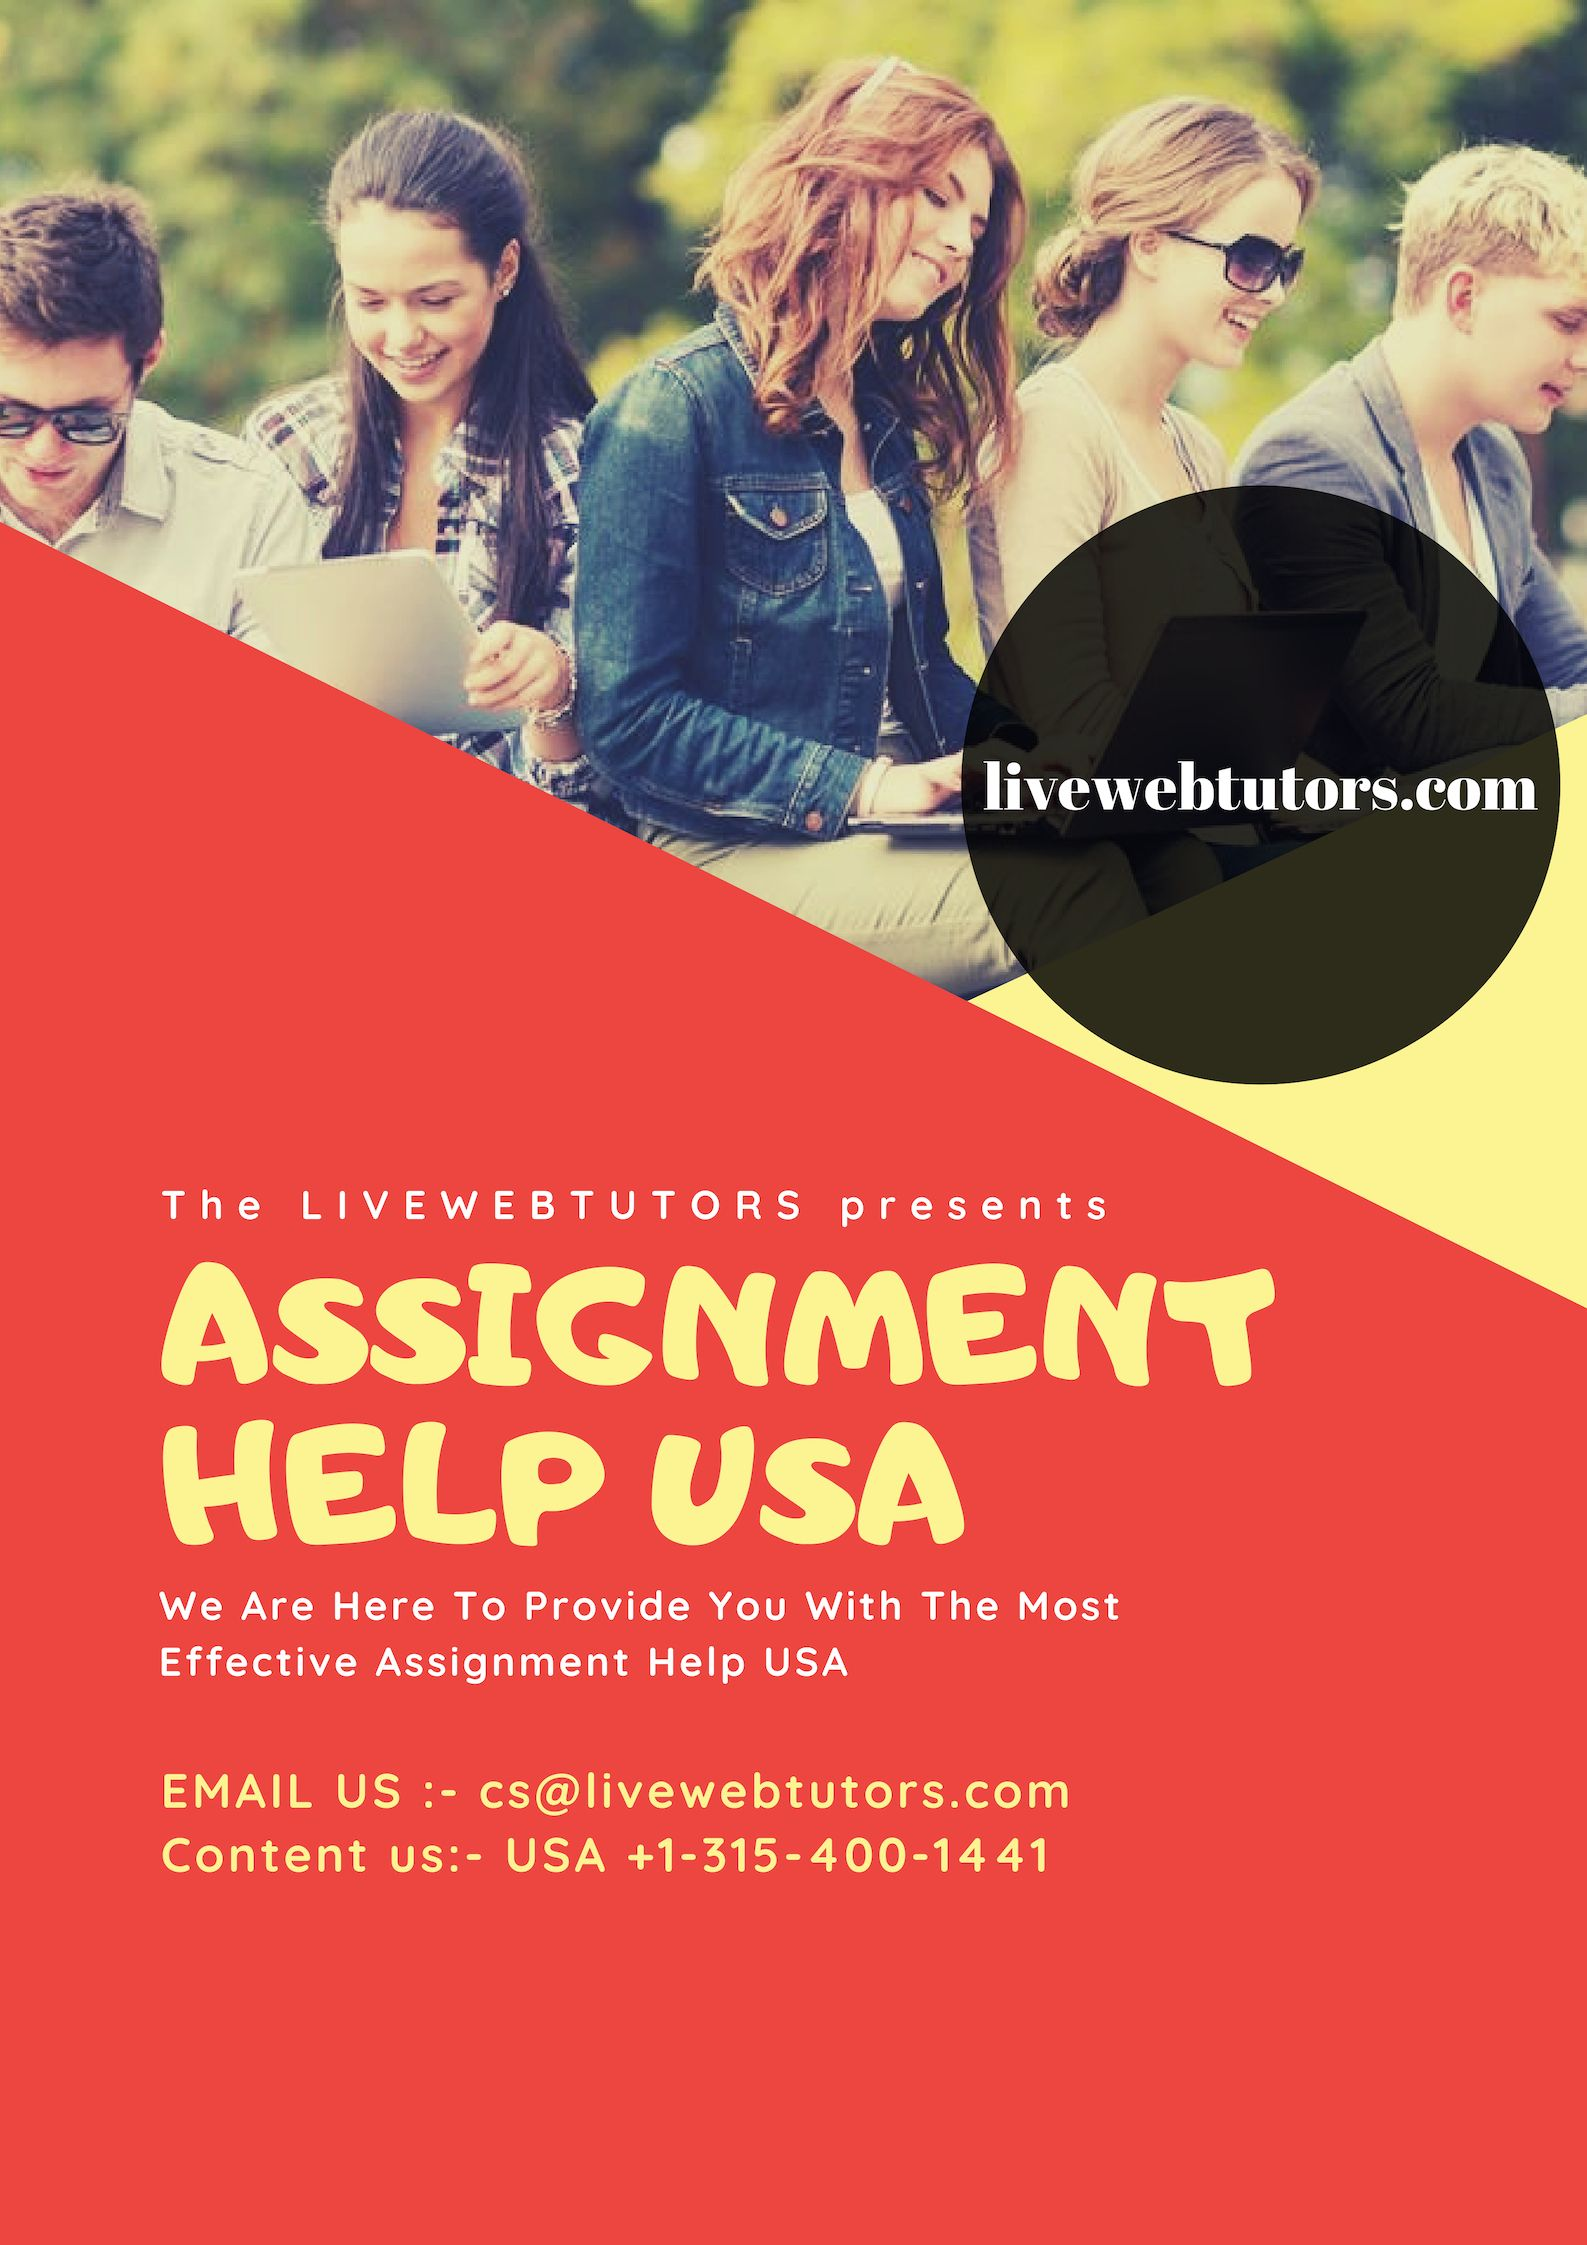 GET ASSIGNMENT HELP IN THE USA TAKE ASSISTANCE FROM THE